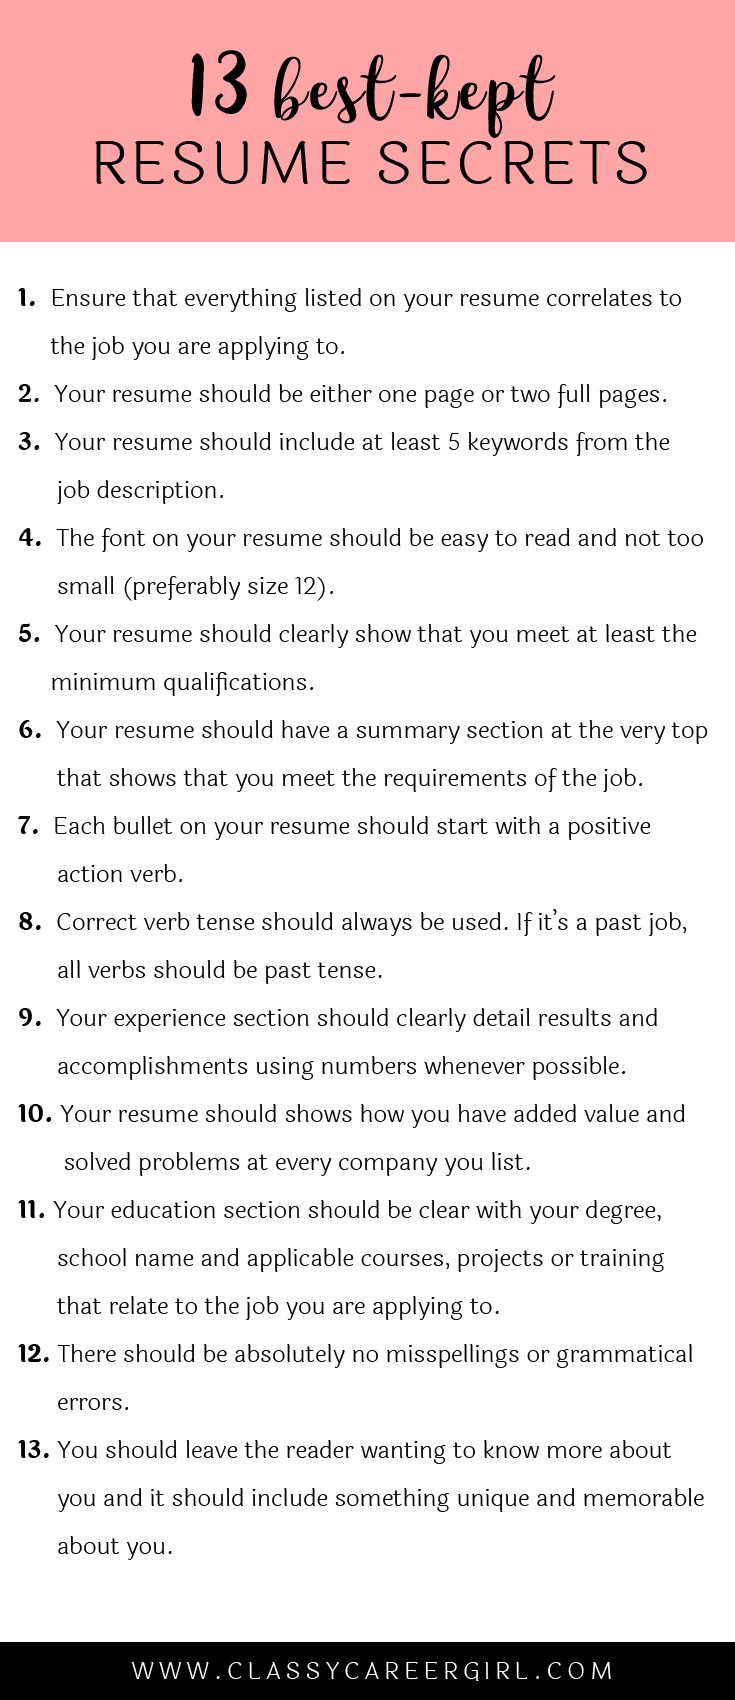 Picnictoimpeachus  Pleasant  Ideas About Resume On Pinterest  Cv Format Resume Cv And  With Fascinating Some Hiring Managers Will Toss Your Resume Out If You Dont Know These  With Alluring Resume Template Free Online Also List Of Accomplishments For Resume In Addition Sample Of A Good Resume And Investment Banking Resume Example As Well As Film Editor Resume Additionally Scholarship Resume Example From Pinterestcom With Picnictoimpeachus  Fascinating  Ideas About Resume On Pinterest  Cv Format Resume Cv And  With Alluring Some Hiring Managers Will Toss Your Resume Out If You Dont Know These  And Pleasant Resume Template Free Online Also List Of Accomplishments For Resume In Addition Sample Of A Good Resume From Pinterestcom